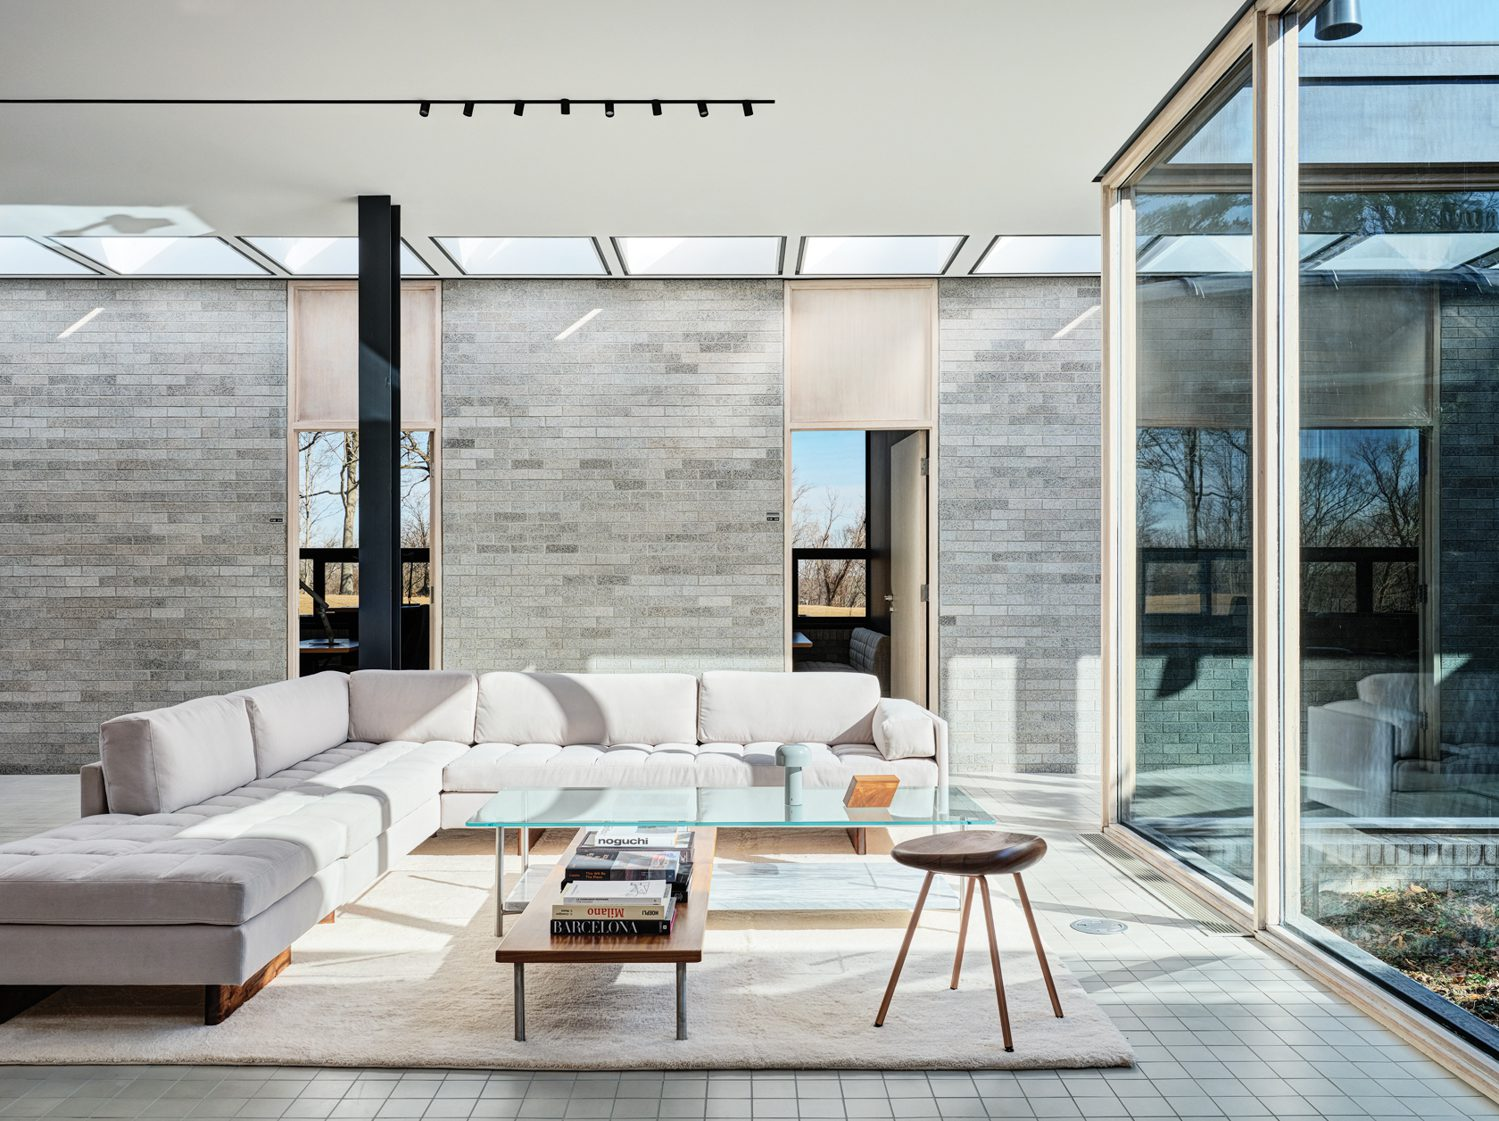 The lounge's Asymmetric sectional, Pebble stool, and Layer table. Photography by Michael Biondo.